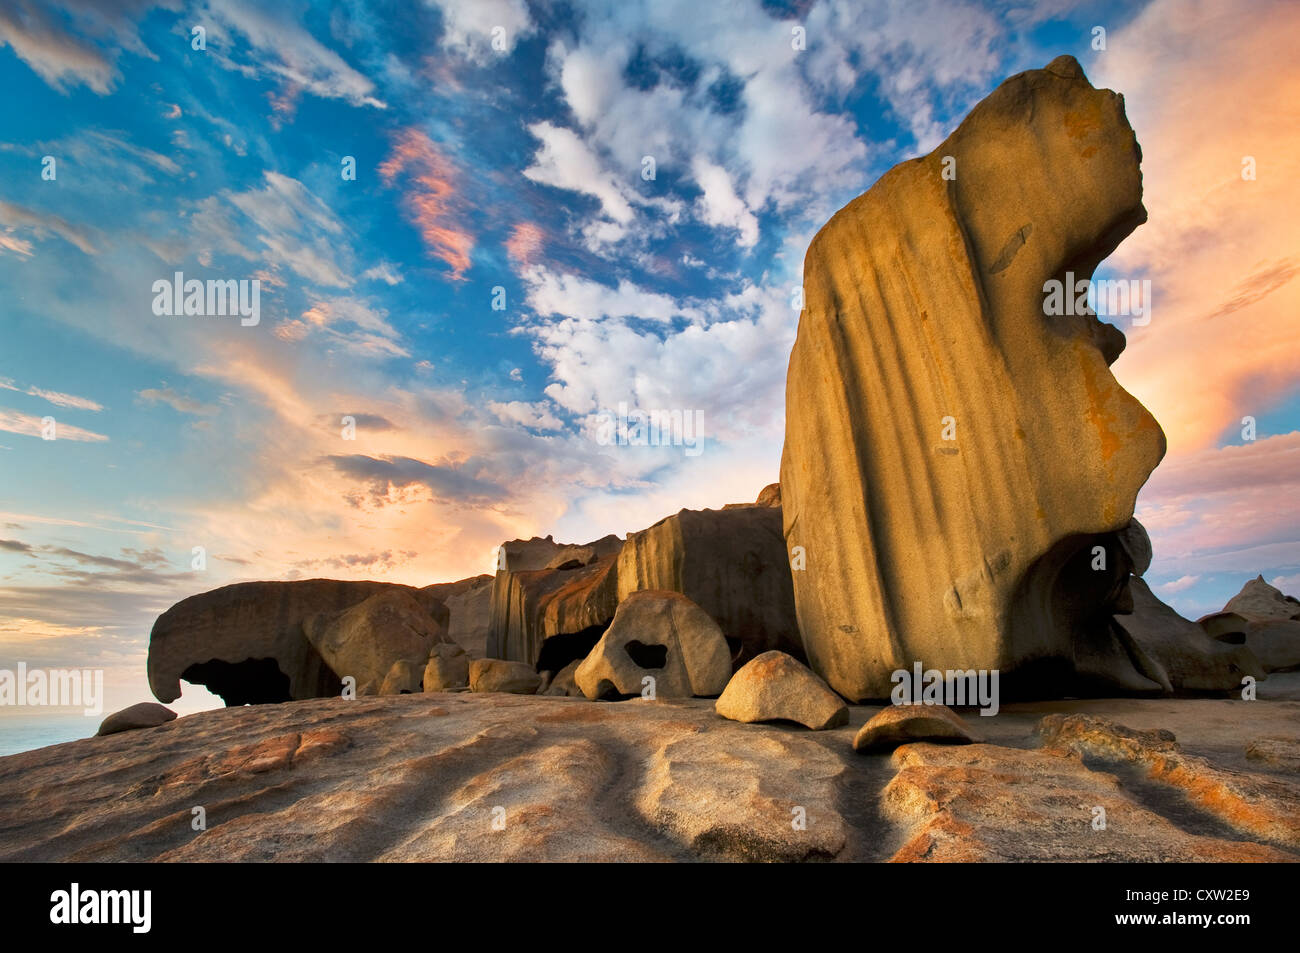 Remarkable Rocks under colourful clouds at sunrise. - Stock Image